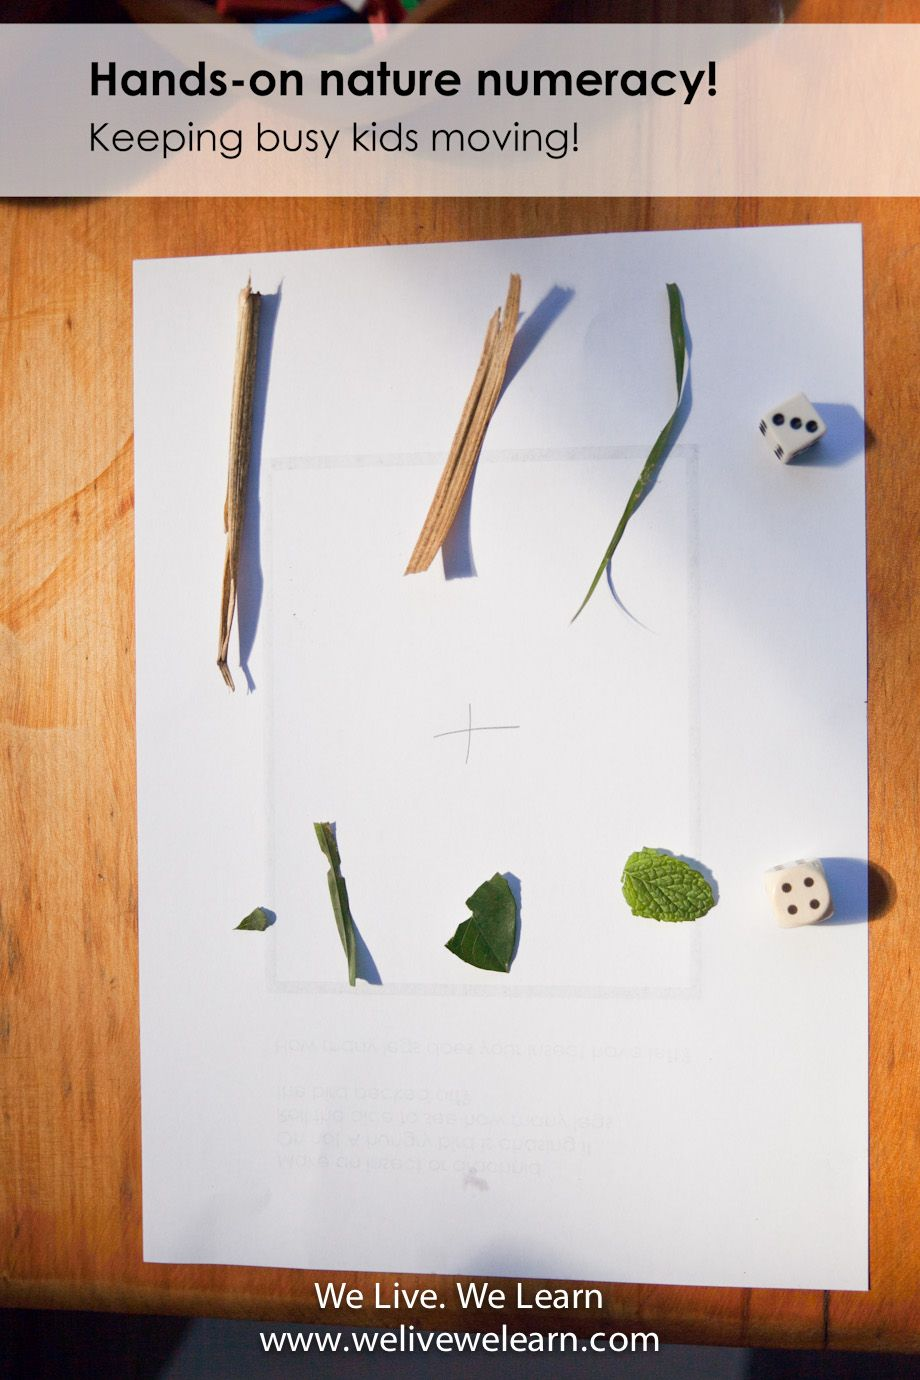 HANDS-ON NATURE NUMERACY – KEEPING BUSY KIDS MOVING!